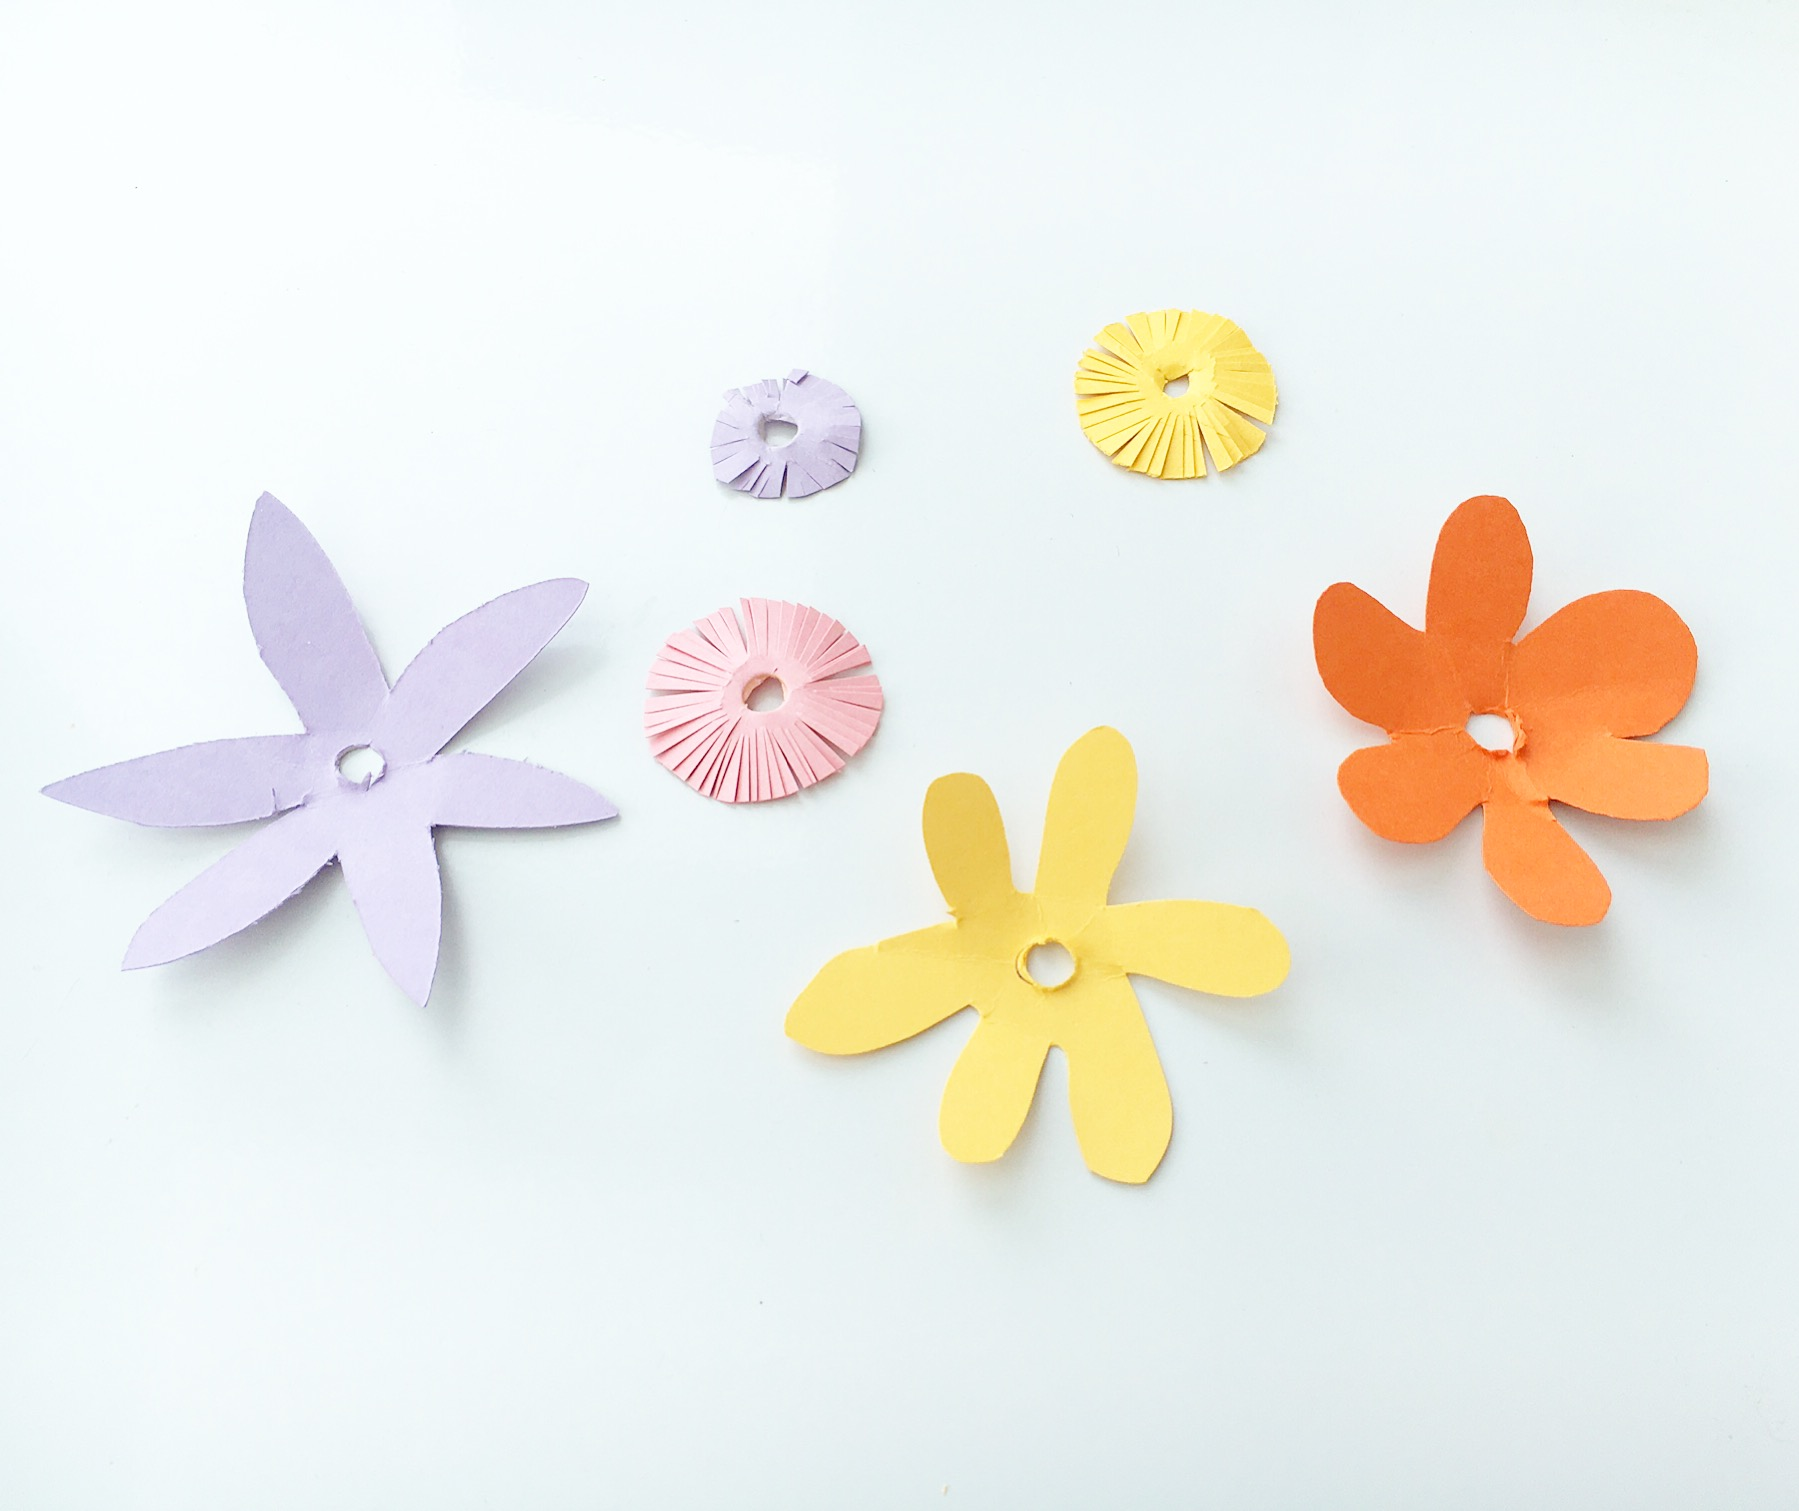 Diy craft paper flowers bouquet the party ville party planner diy craft paper flowers bouquet the party ville party planner luxembourg wedding planner luxembourg party shop party supplies baby shower jeuxipadfo Gallery